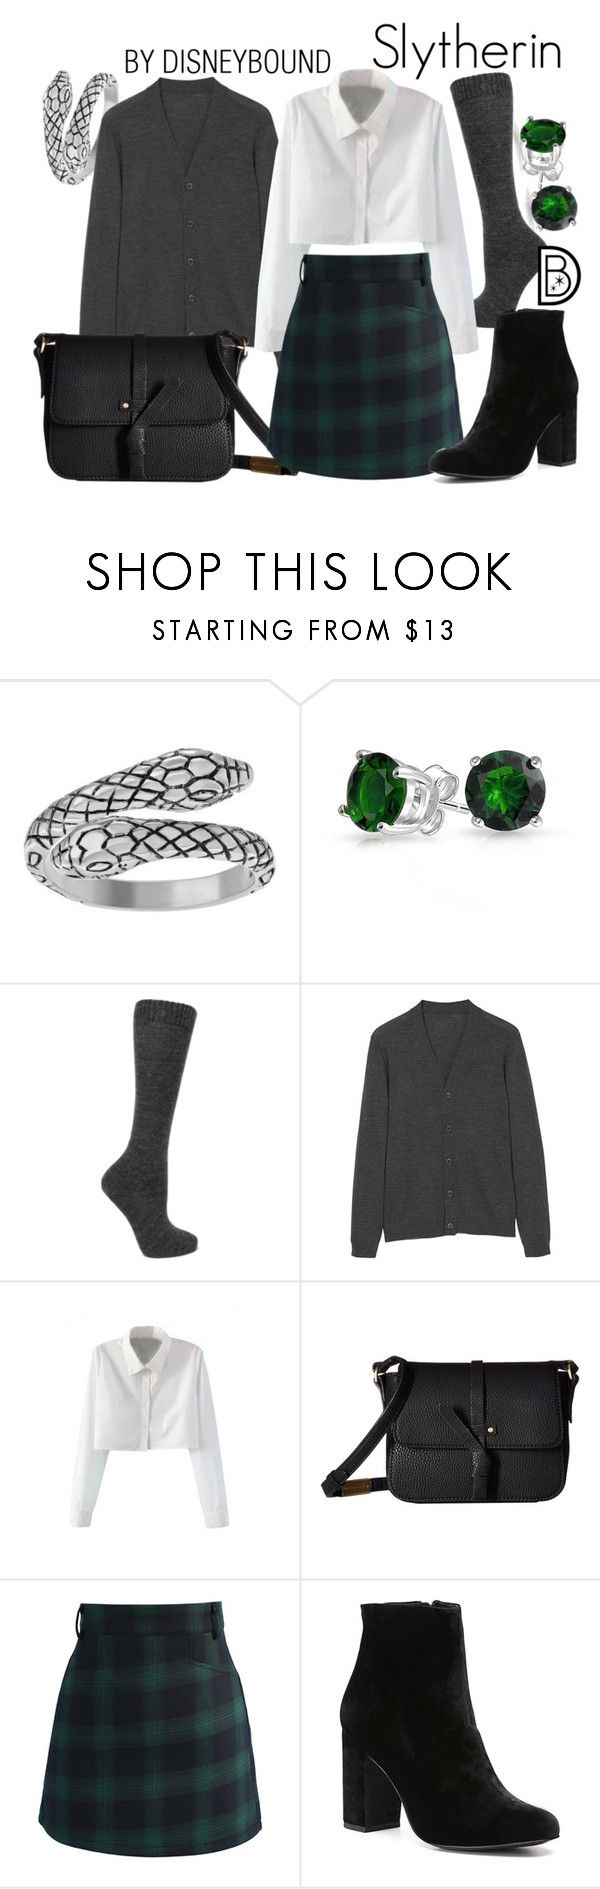 """Slytherin"" by leslieakay ❤ liked on Polyvore featuring Journee Collection, Bling Jewelry, Isabel Marant, MANGO, WithChic, Foley + Corinna, Chicwish, Witchery, harrypotter and slytherin"